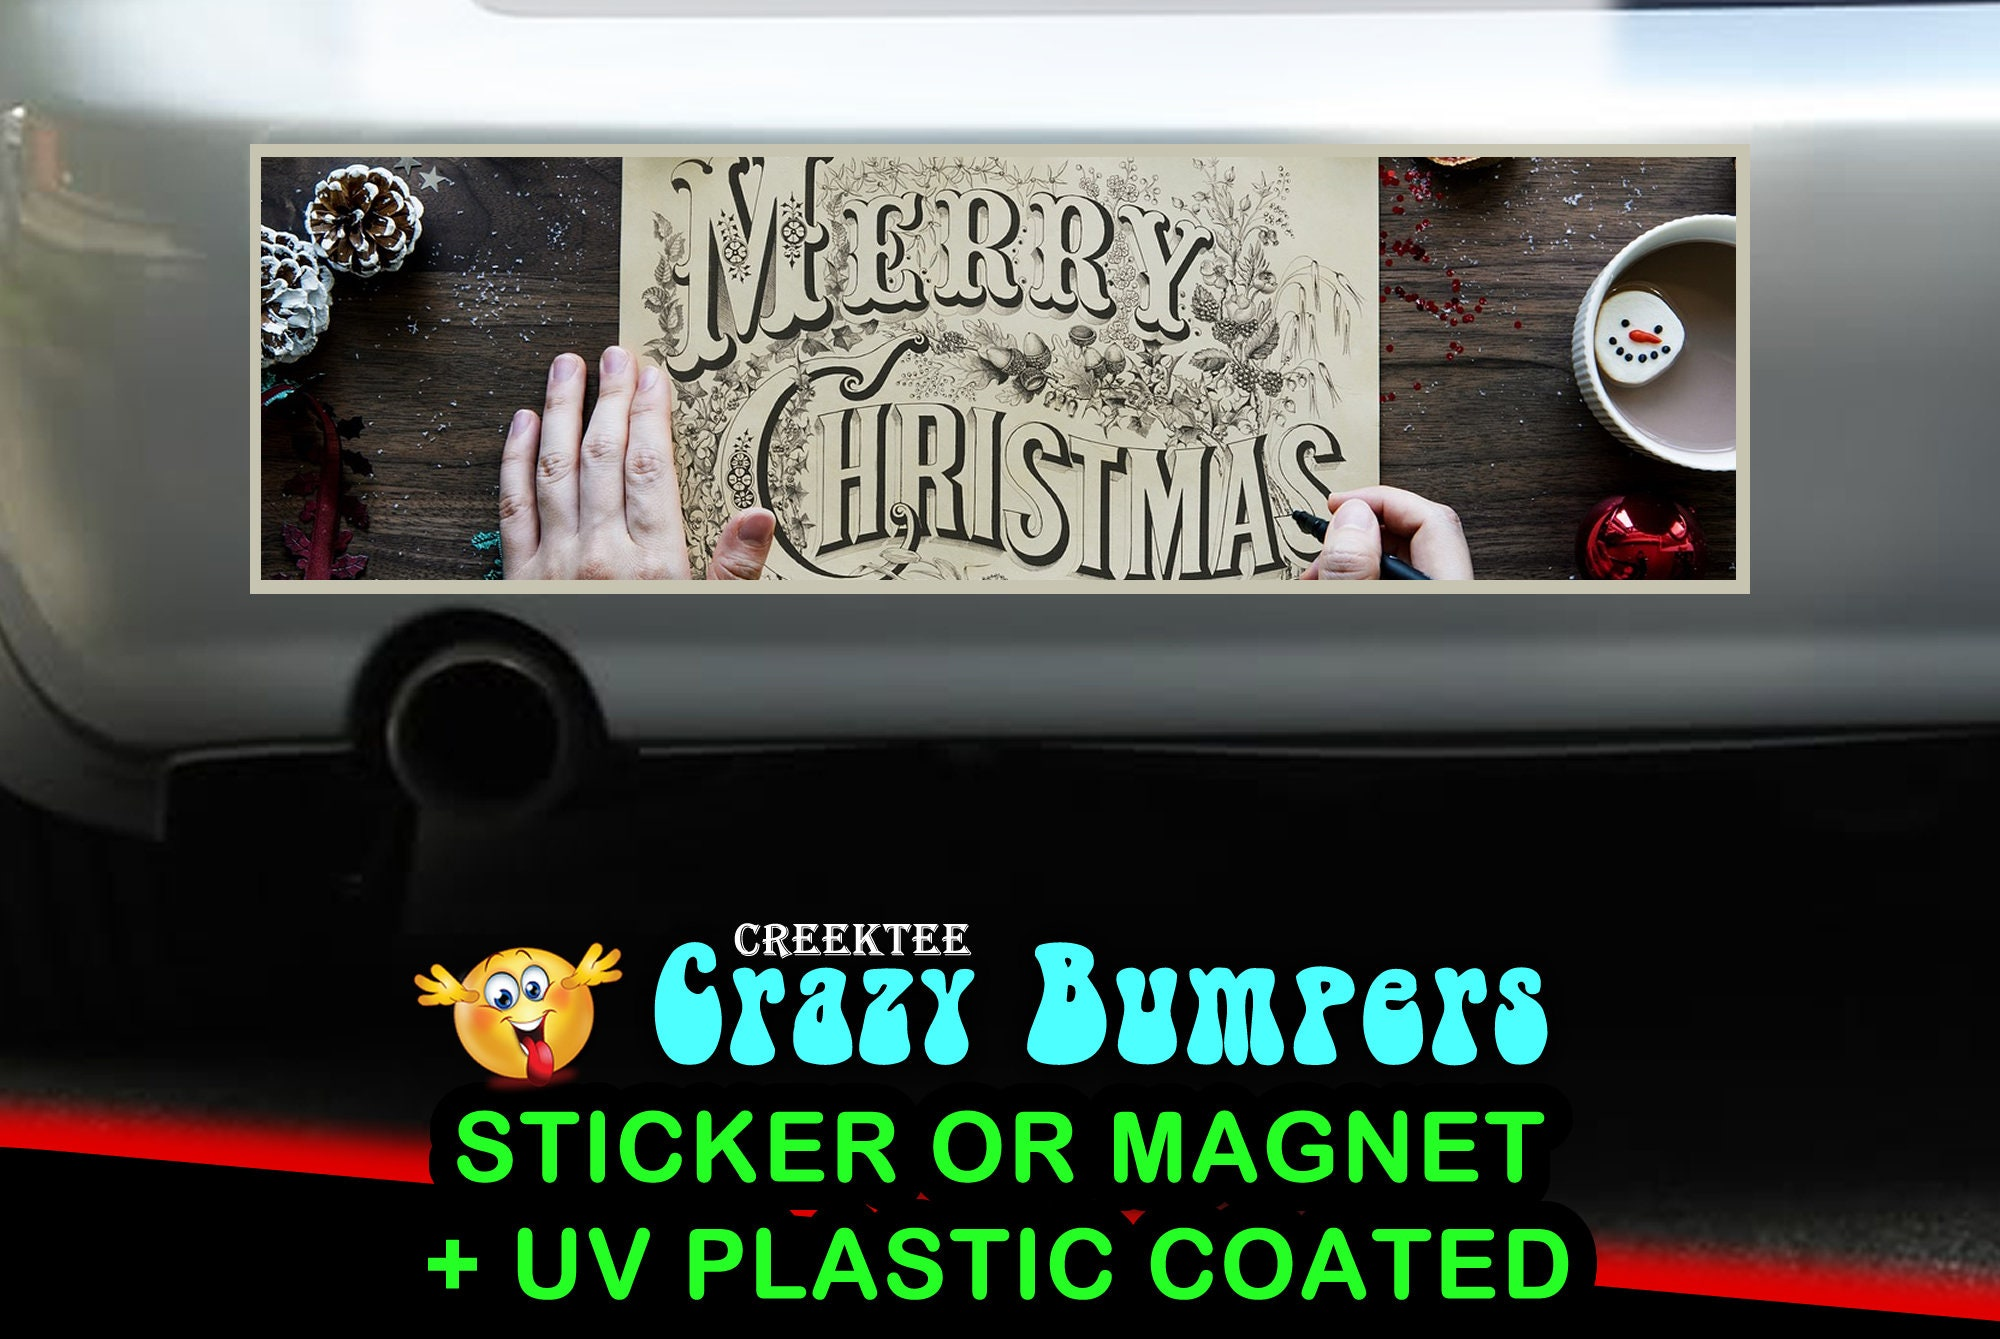 $9.99 - Merry Christmas 10 x 3 Bumper Sticker or Magnetic Bumper Sticker Available